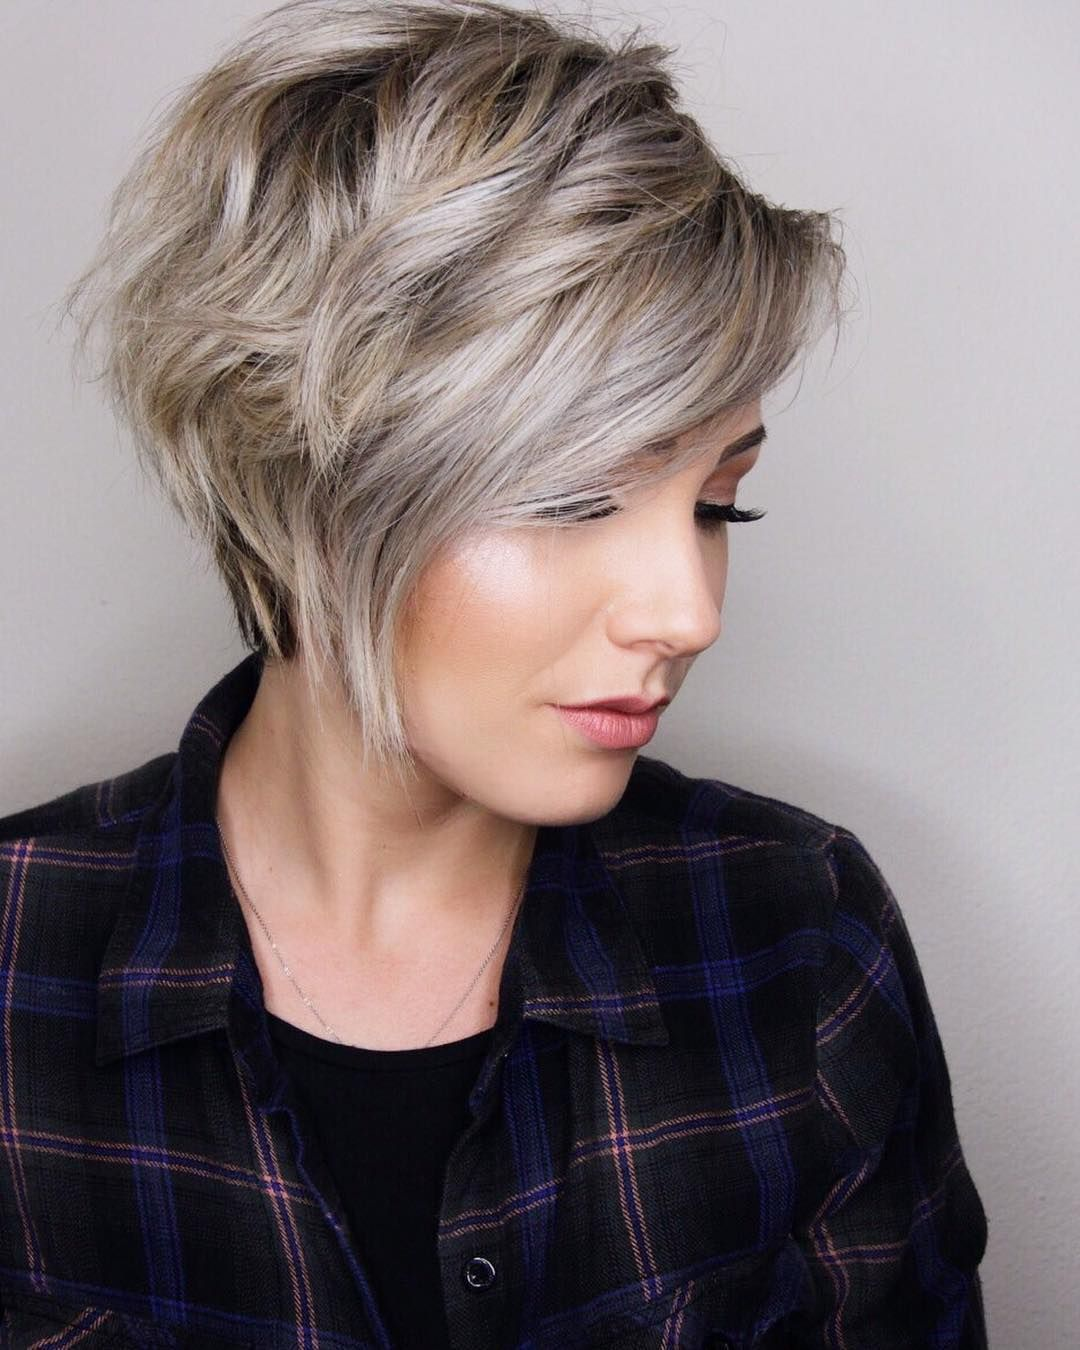 49+ Short layered hairstyles for thick hair ideas in 2021